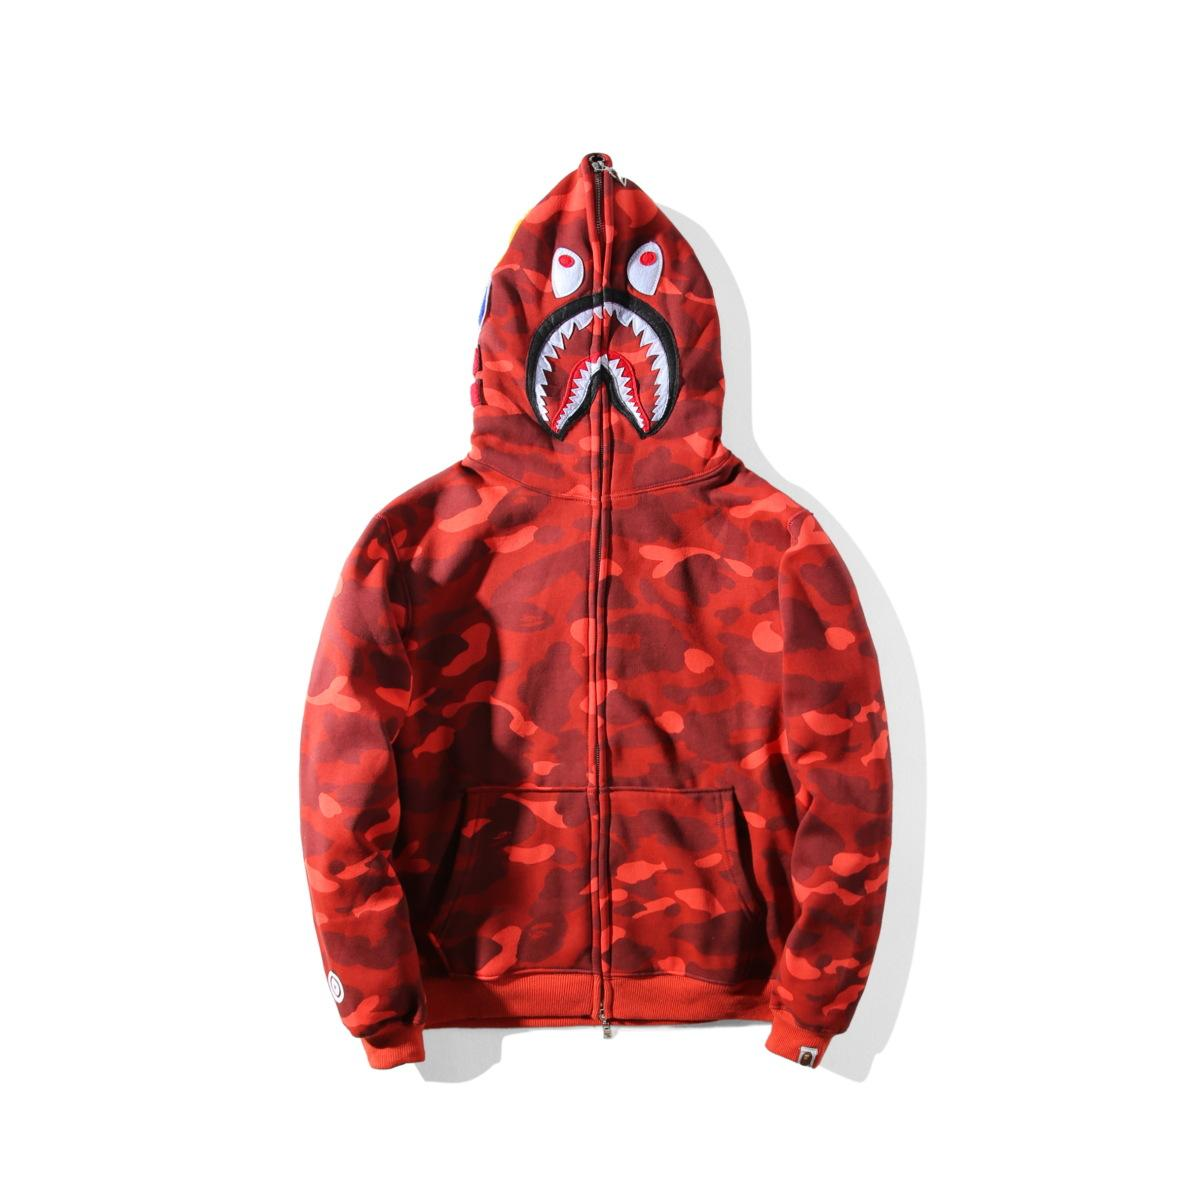 64f578b812b2 2019 2018 Men S Ape Women Clothes Camouflage Shark Printing Casual Sweater  Off A Bathing Aape Men Women Hooded Loose Jacket White Men S Clothing From  ...